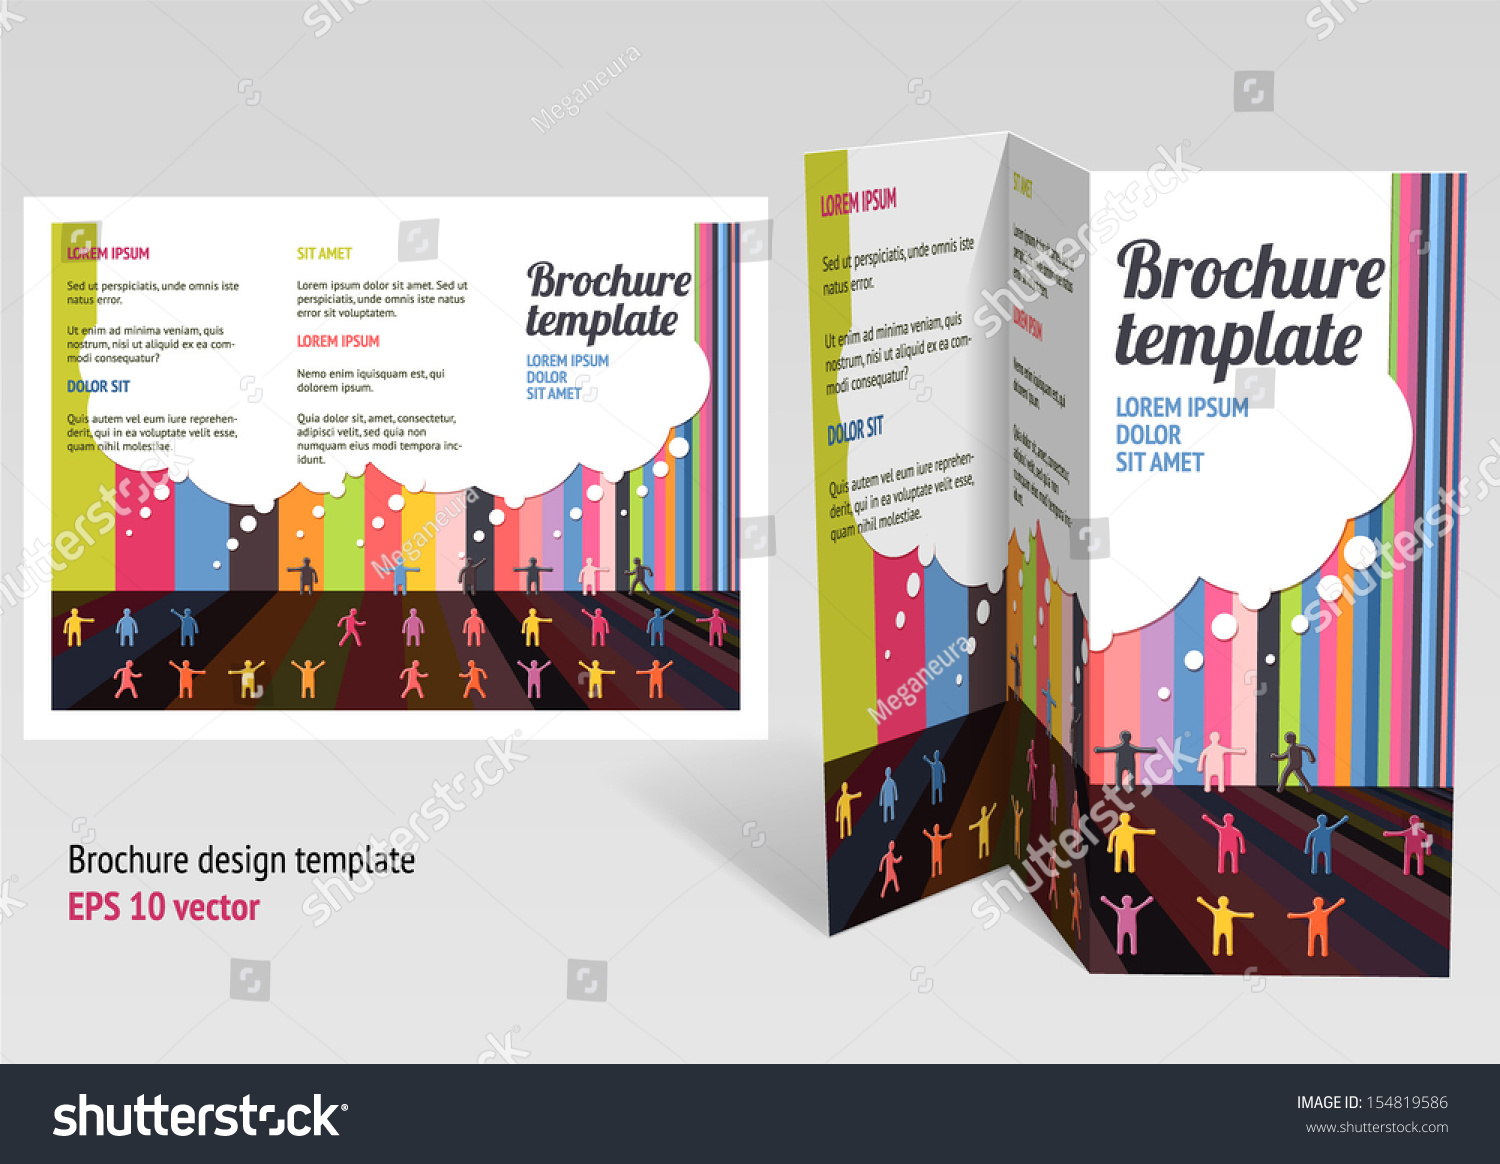 Magnificent 1 Page Proposal Template Small 1 Week Schedule Template Rectangular 110 Block Label Template 1st Birthday Invite Templates Old 2 Page Resume Format Doc White2 Page Resume Template Word Brochure Booklet Zfold Layout Editable Design Stock Vector ..